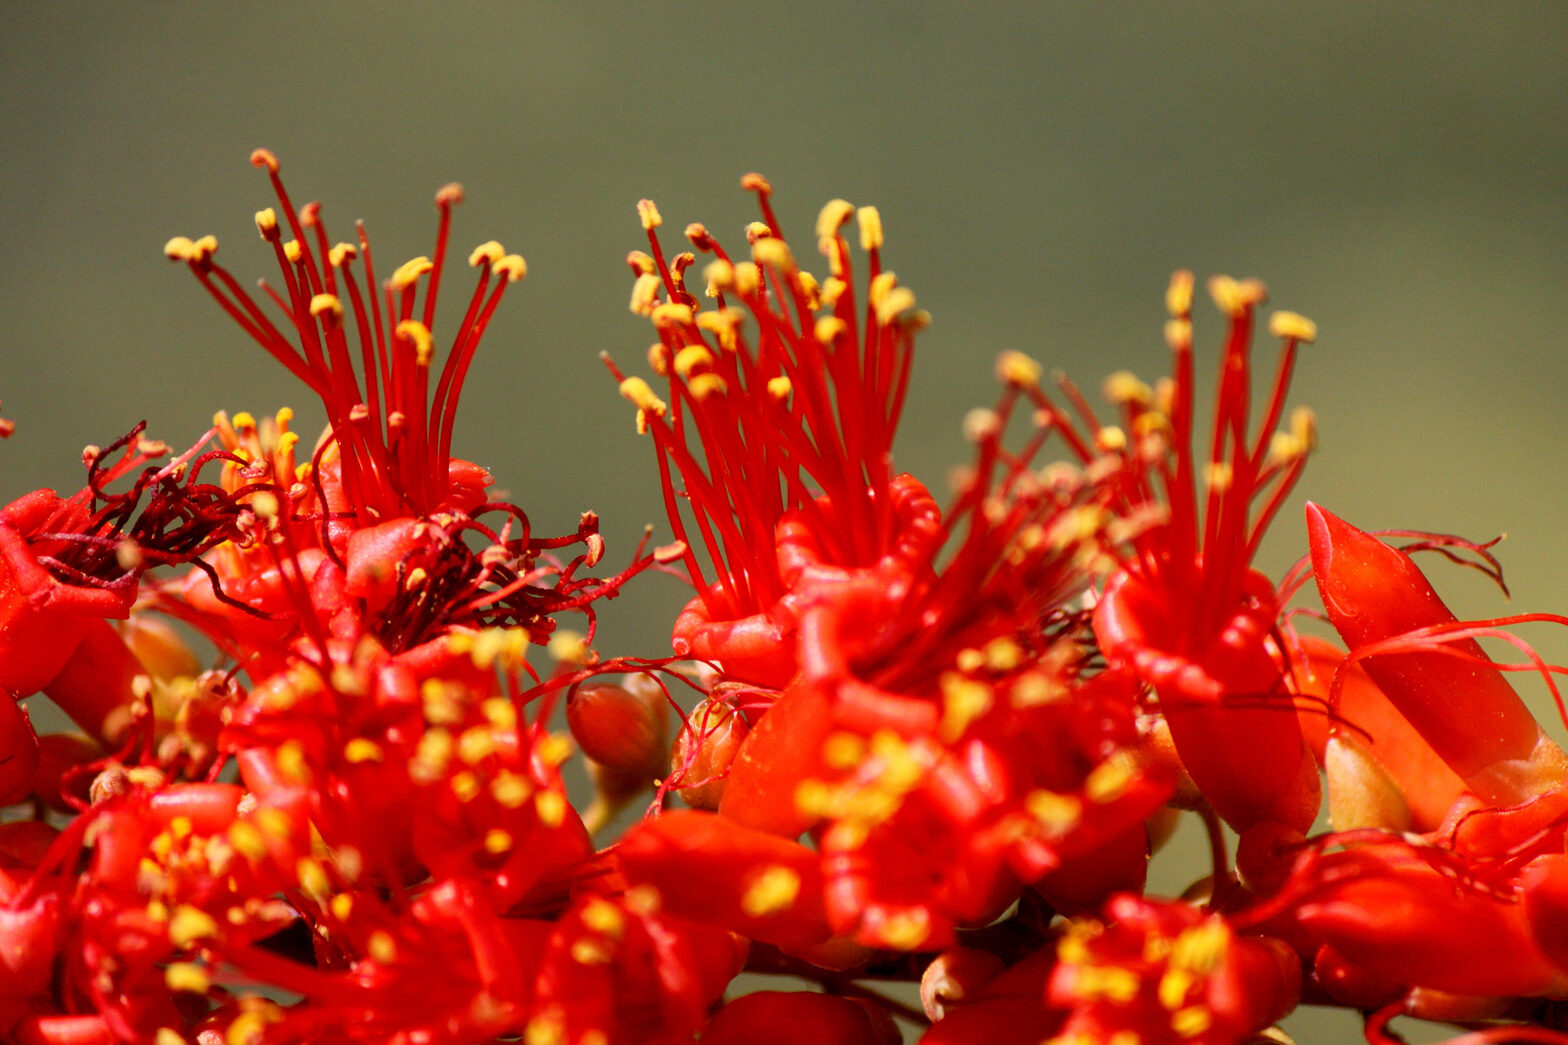 A close-up of red Ocotillo flowers.